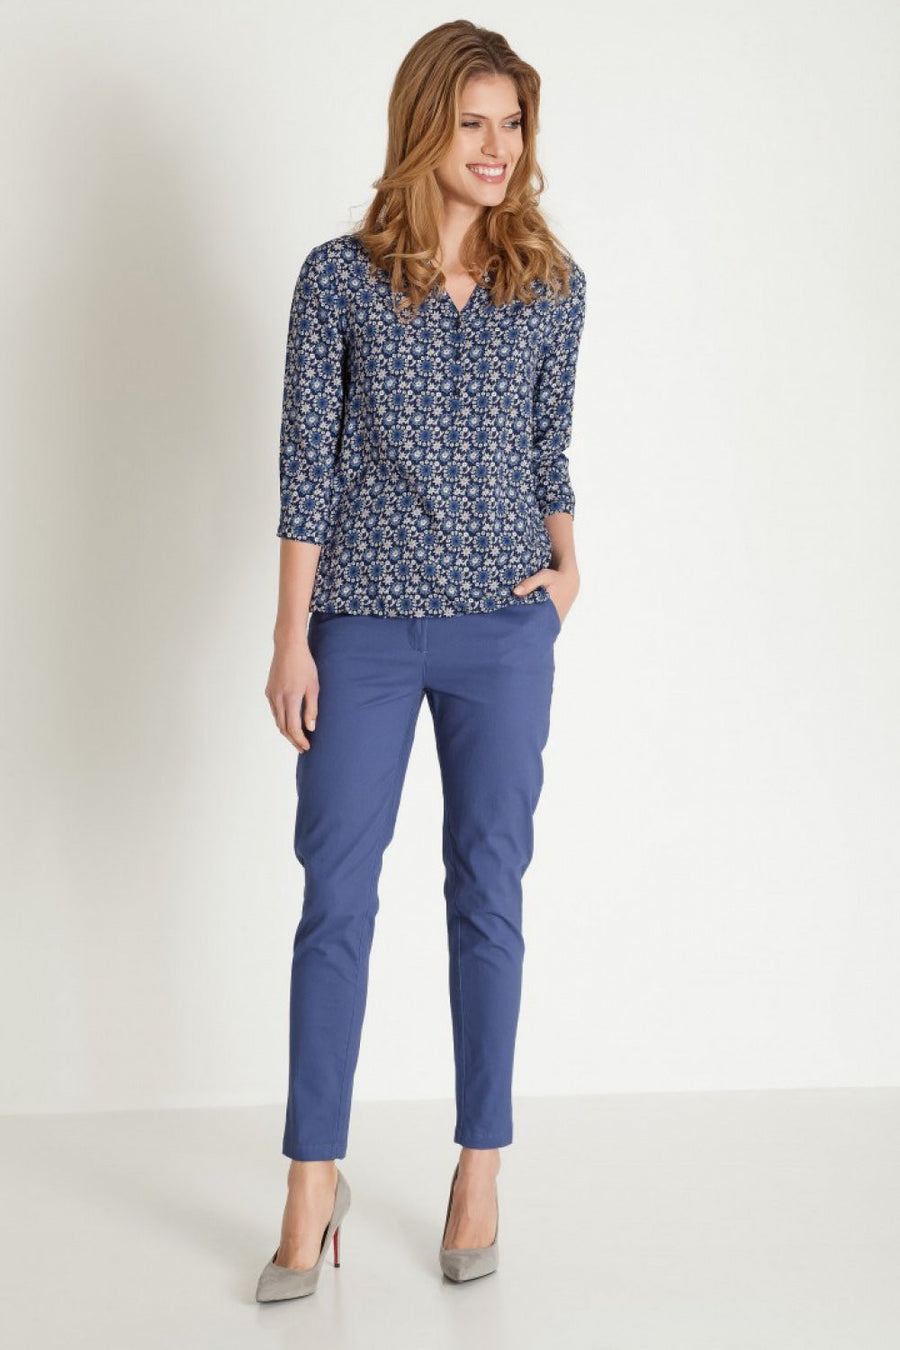 Blouse 77923 Greenpoint-Women`s Blouses & Tunics-Greenpoint-blue-36-TRESFANCY